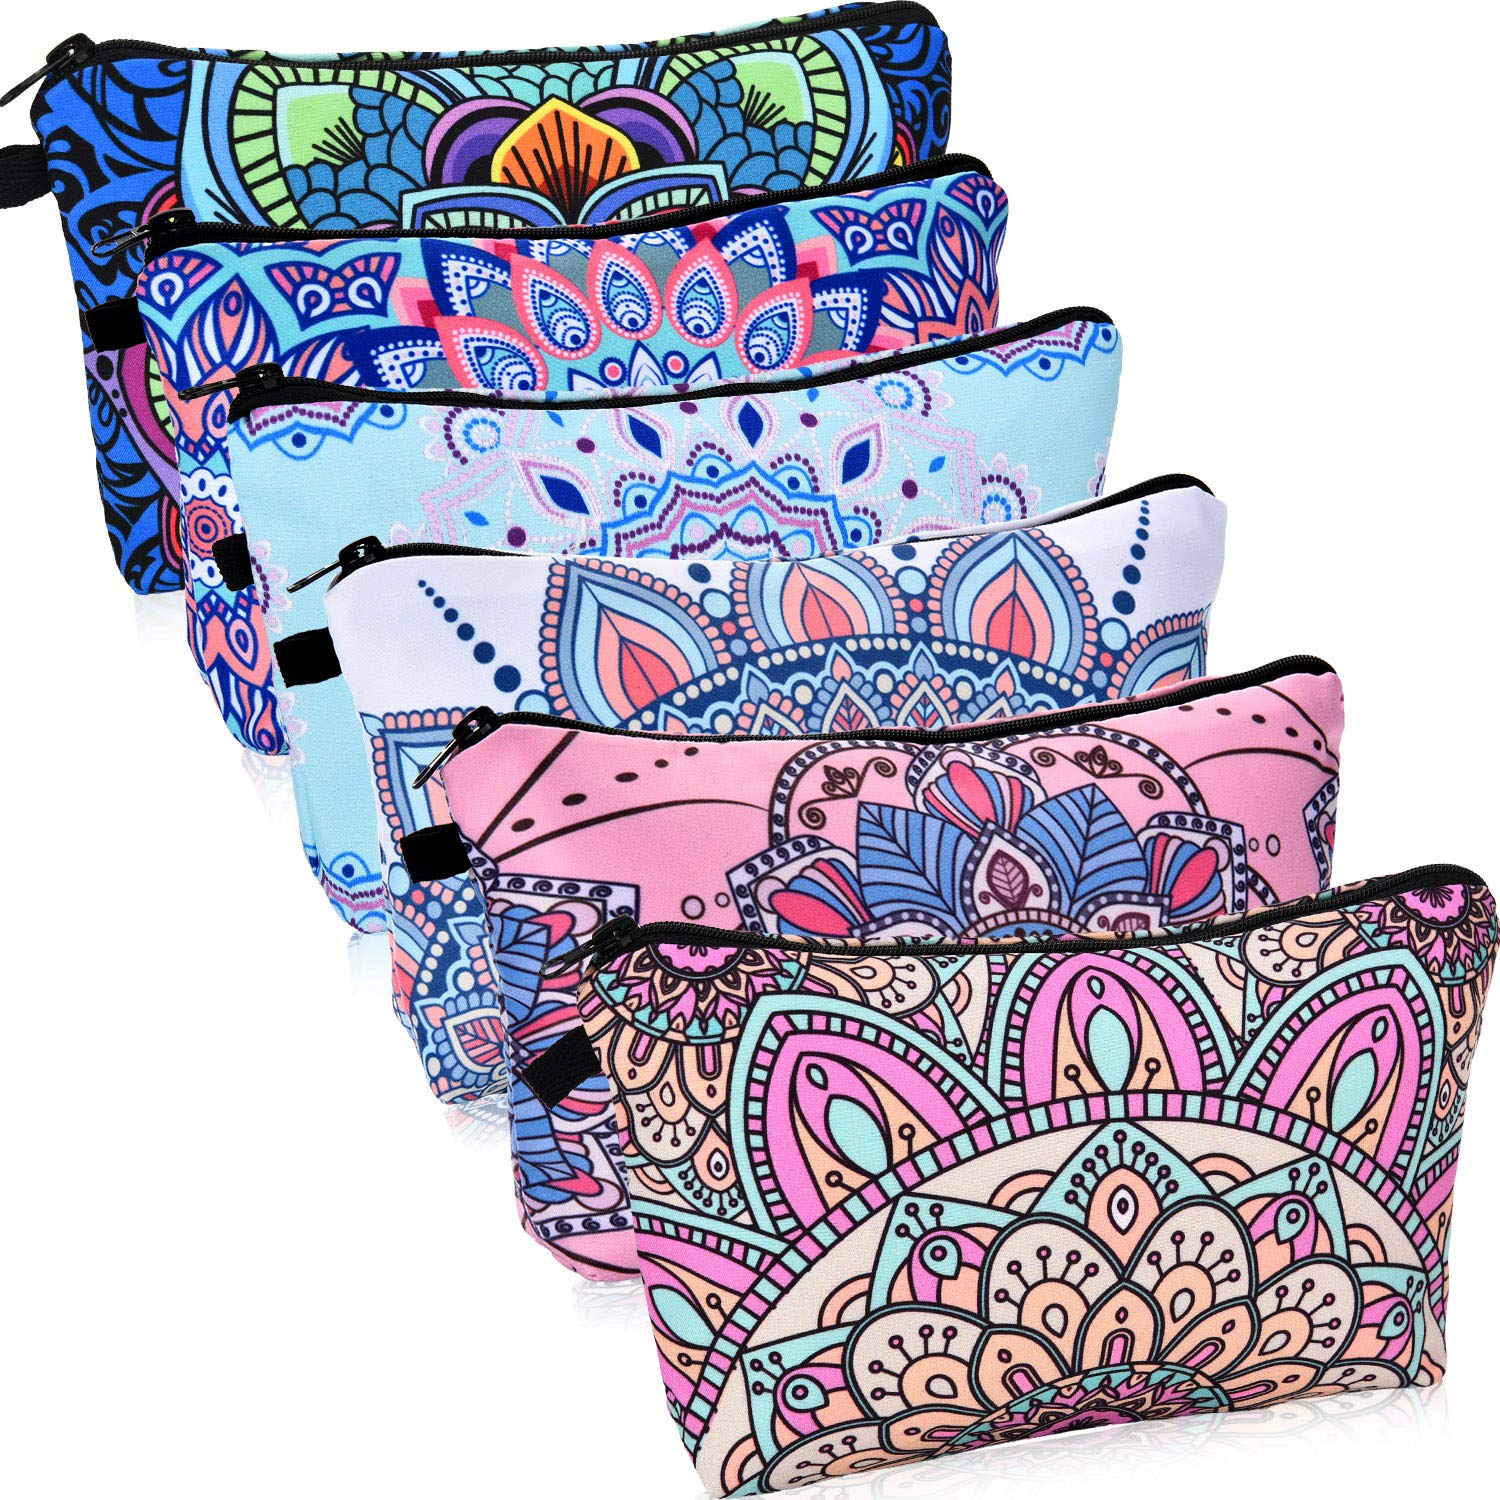 6 Pieces Makeup Bag Toiletry Pouch Waterproof Cosmetic Bag with Mandala Flowers Patterns, 6 Styles (Style 1)